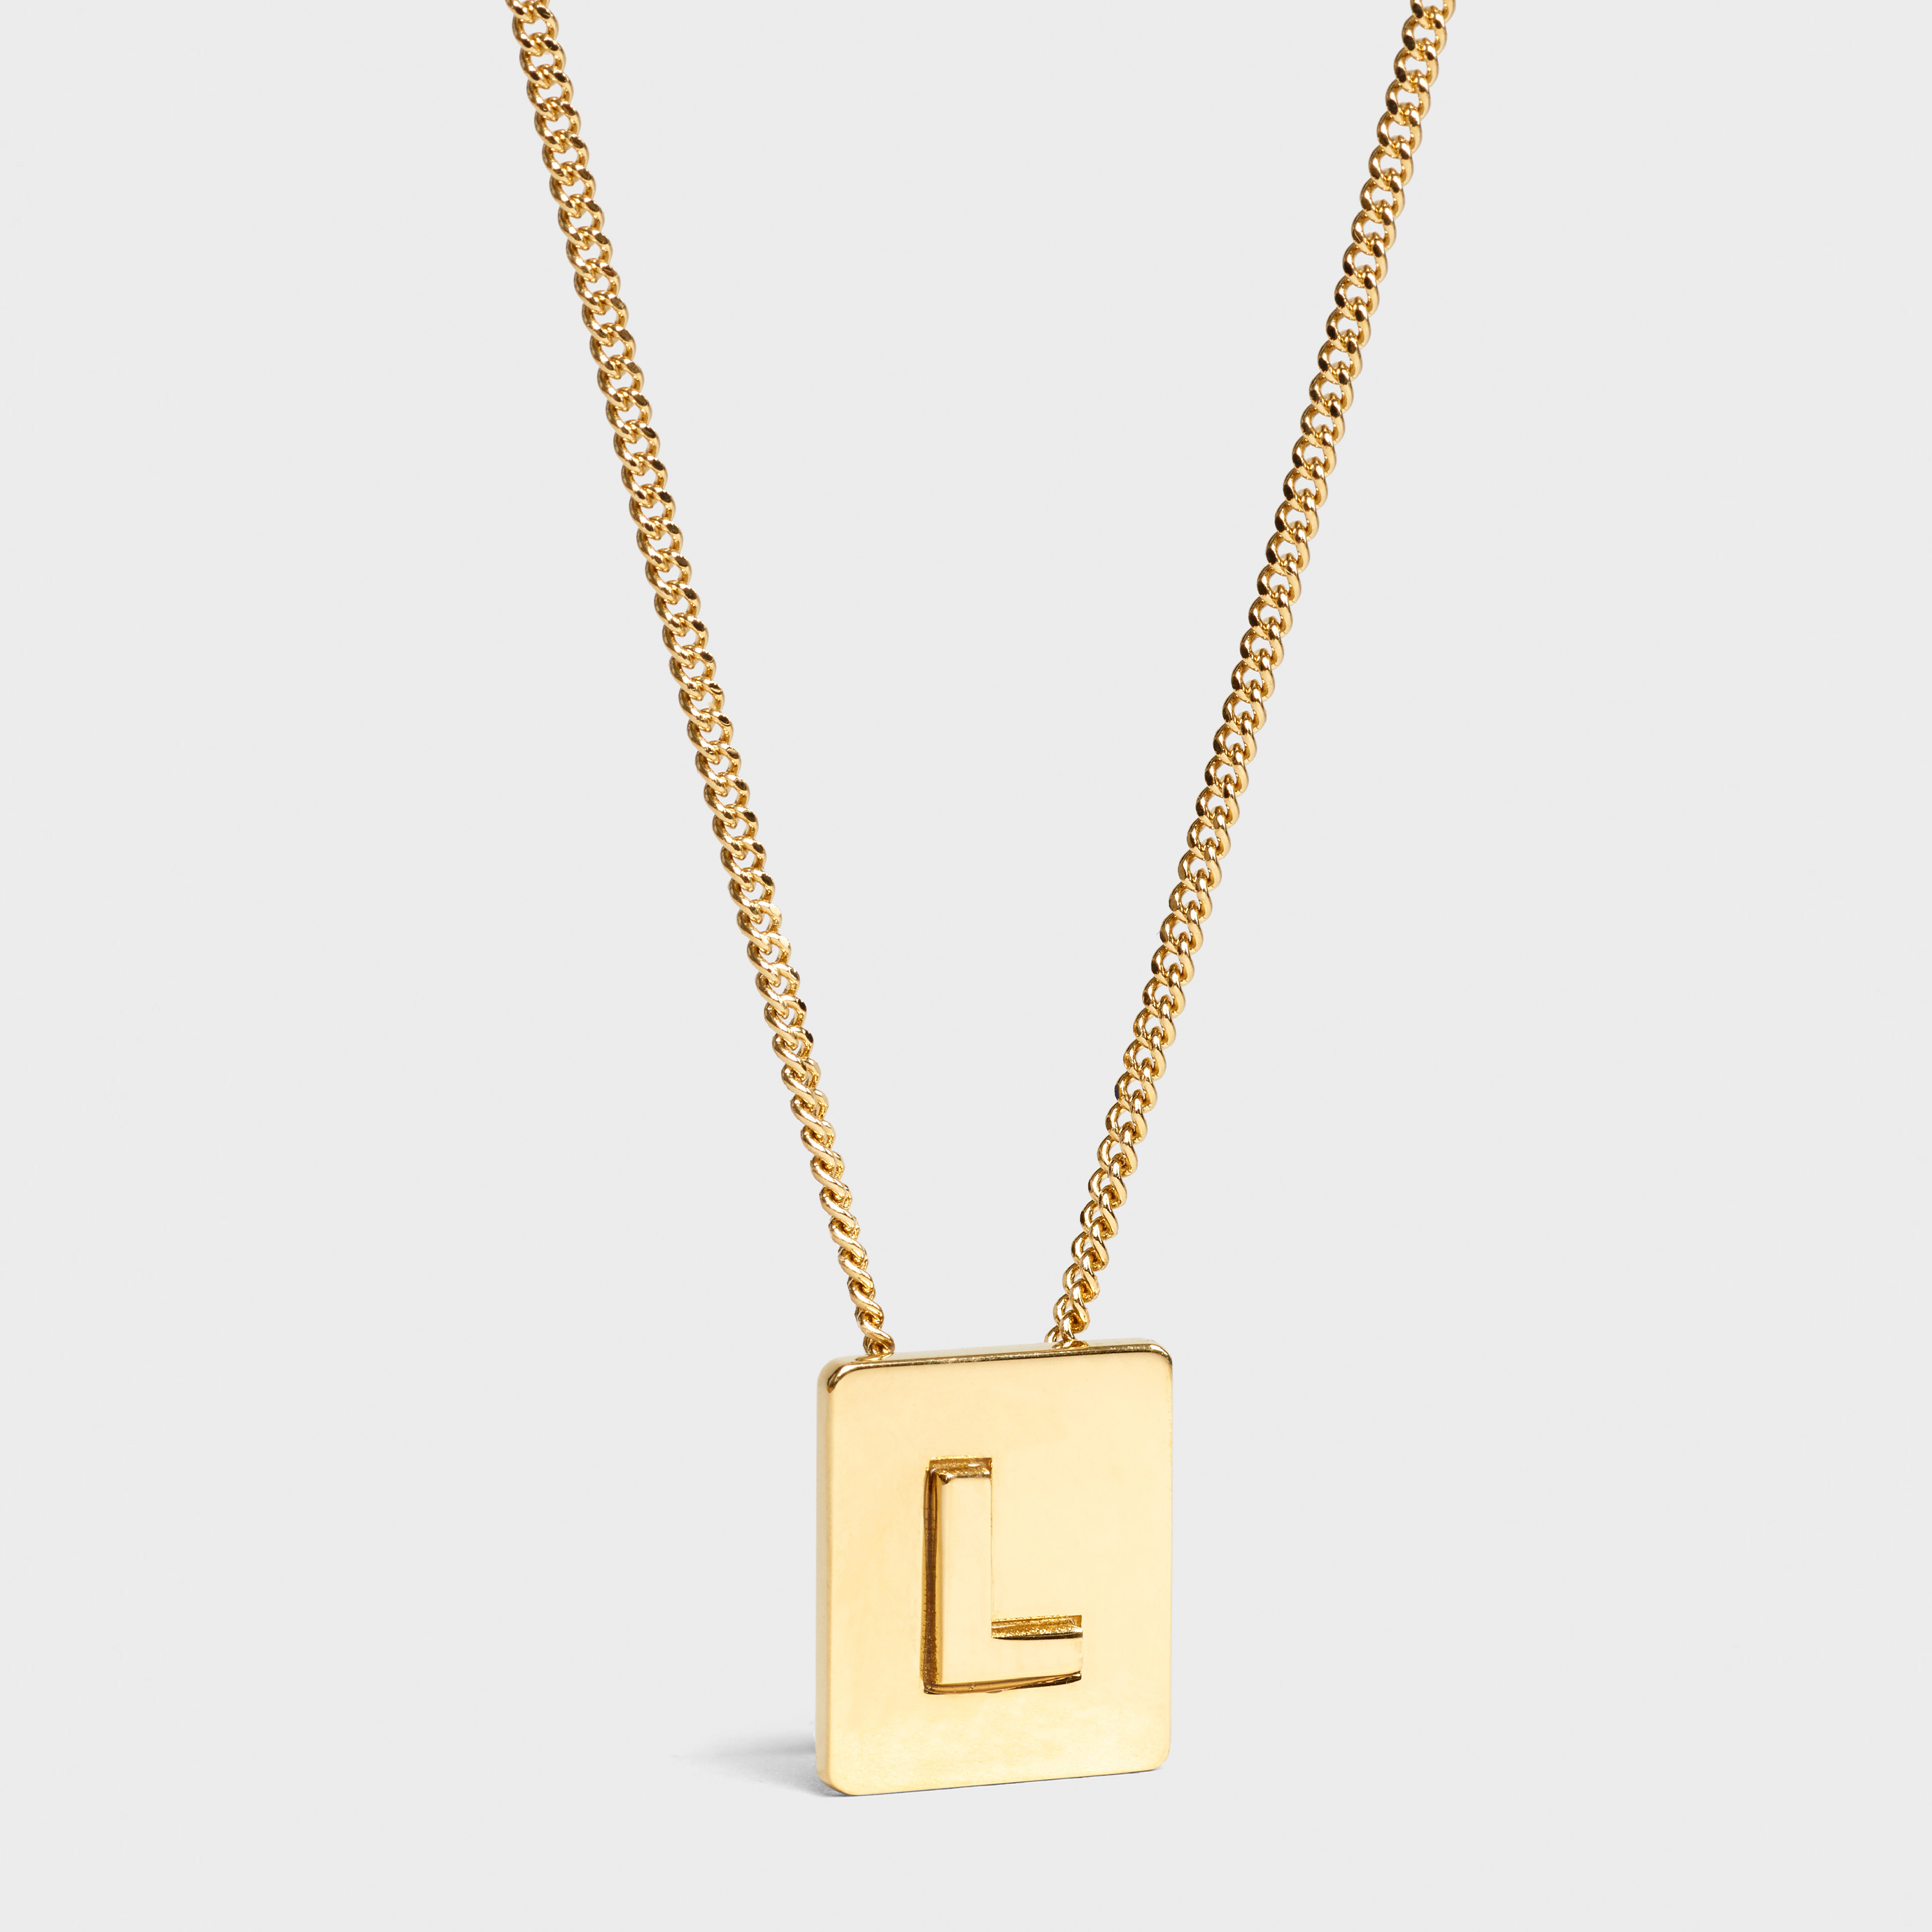 Alphabet L necklace in brass with gold finish | CELINE